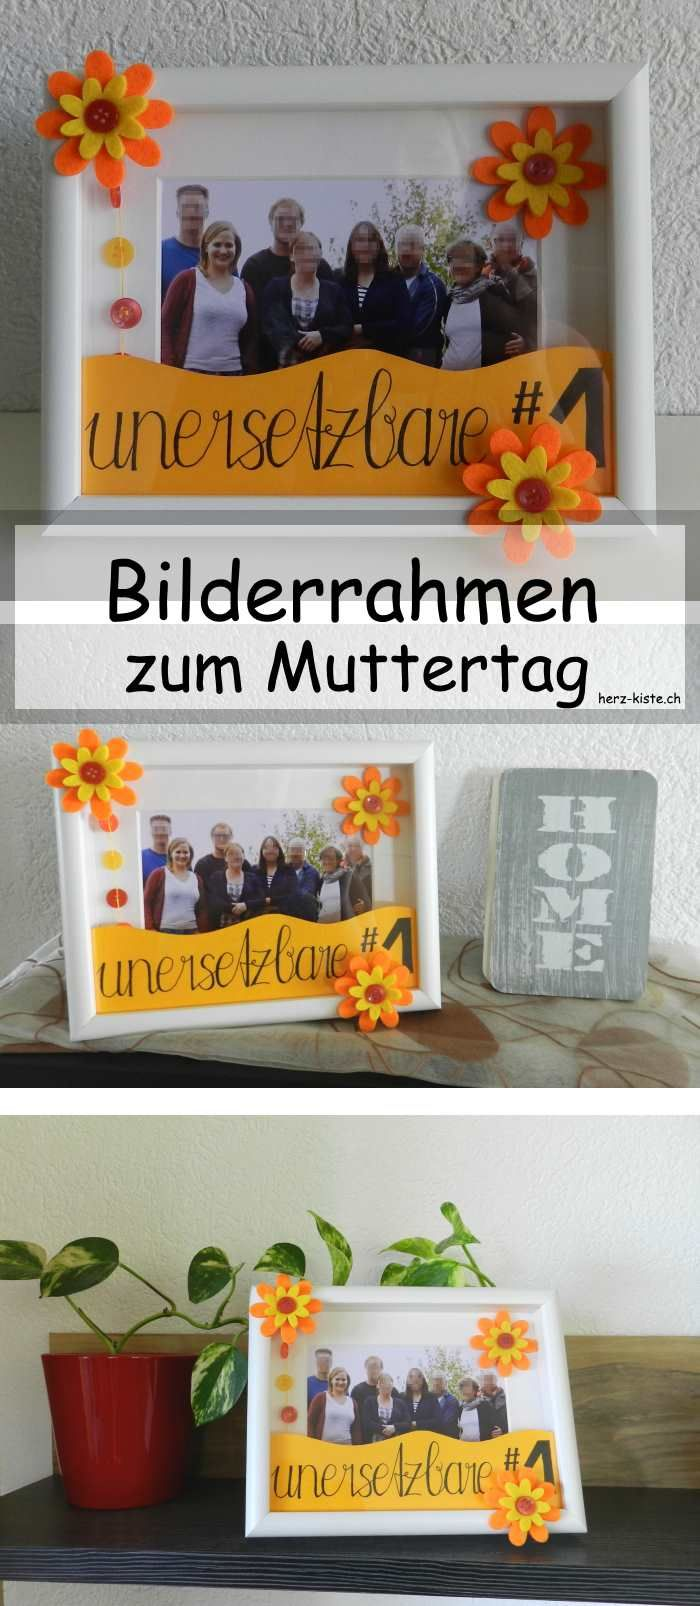 1000 images about diy ideen auf deutsch on pinterest. Black Bedroom Furniture Sets. Home Design Ideas